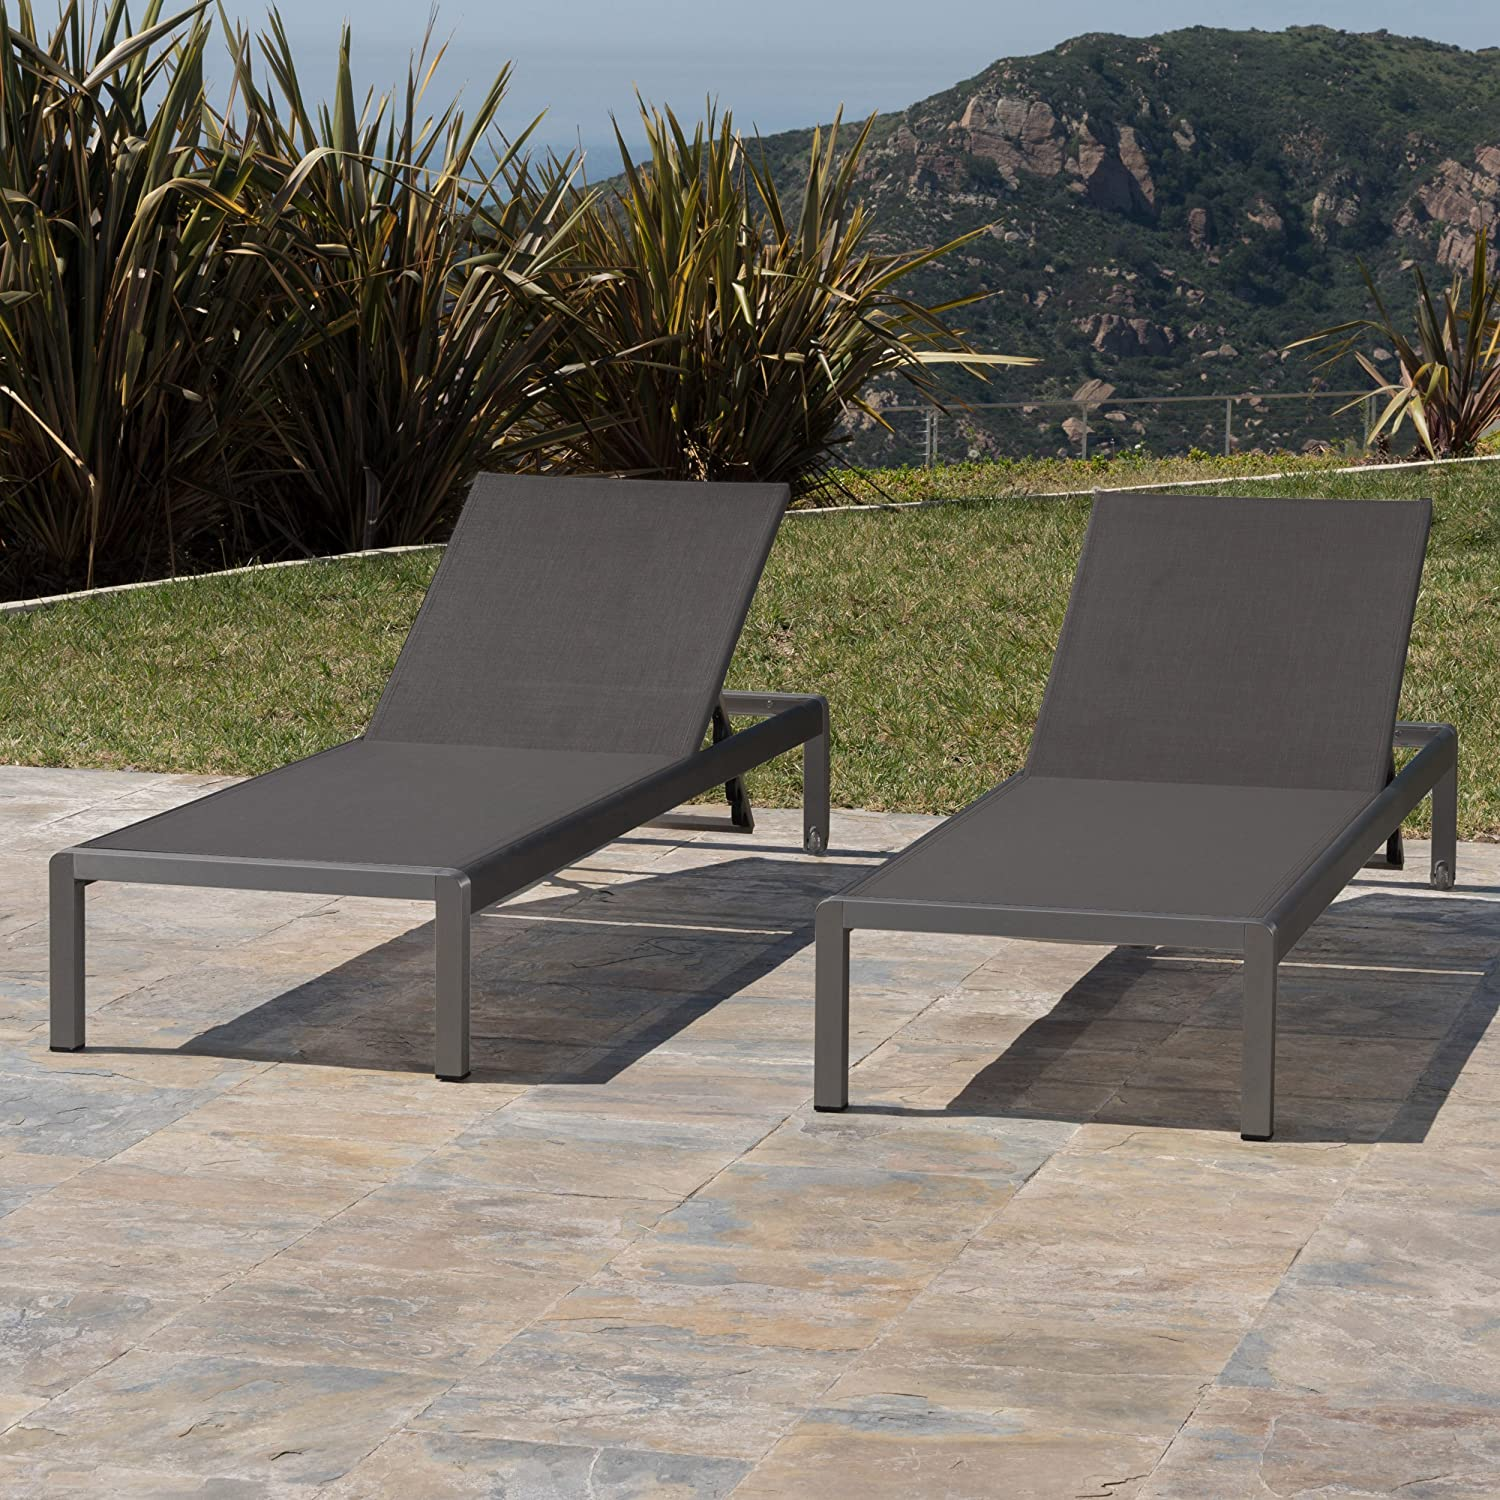 Amazon com crested bay patio furniture outdoor grey aluminum chaise lounge with dark grey mesh seat set of 2 garden outdoor